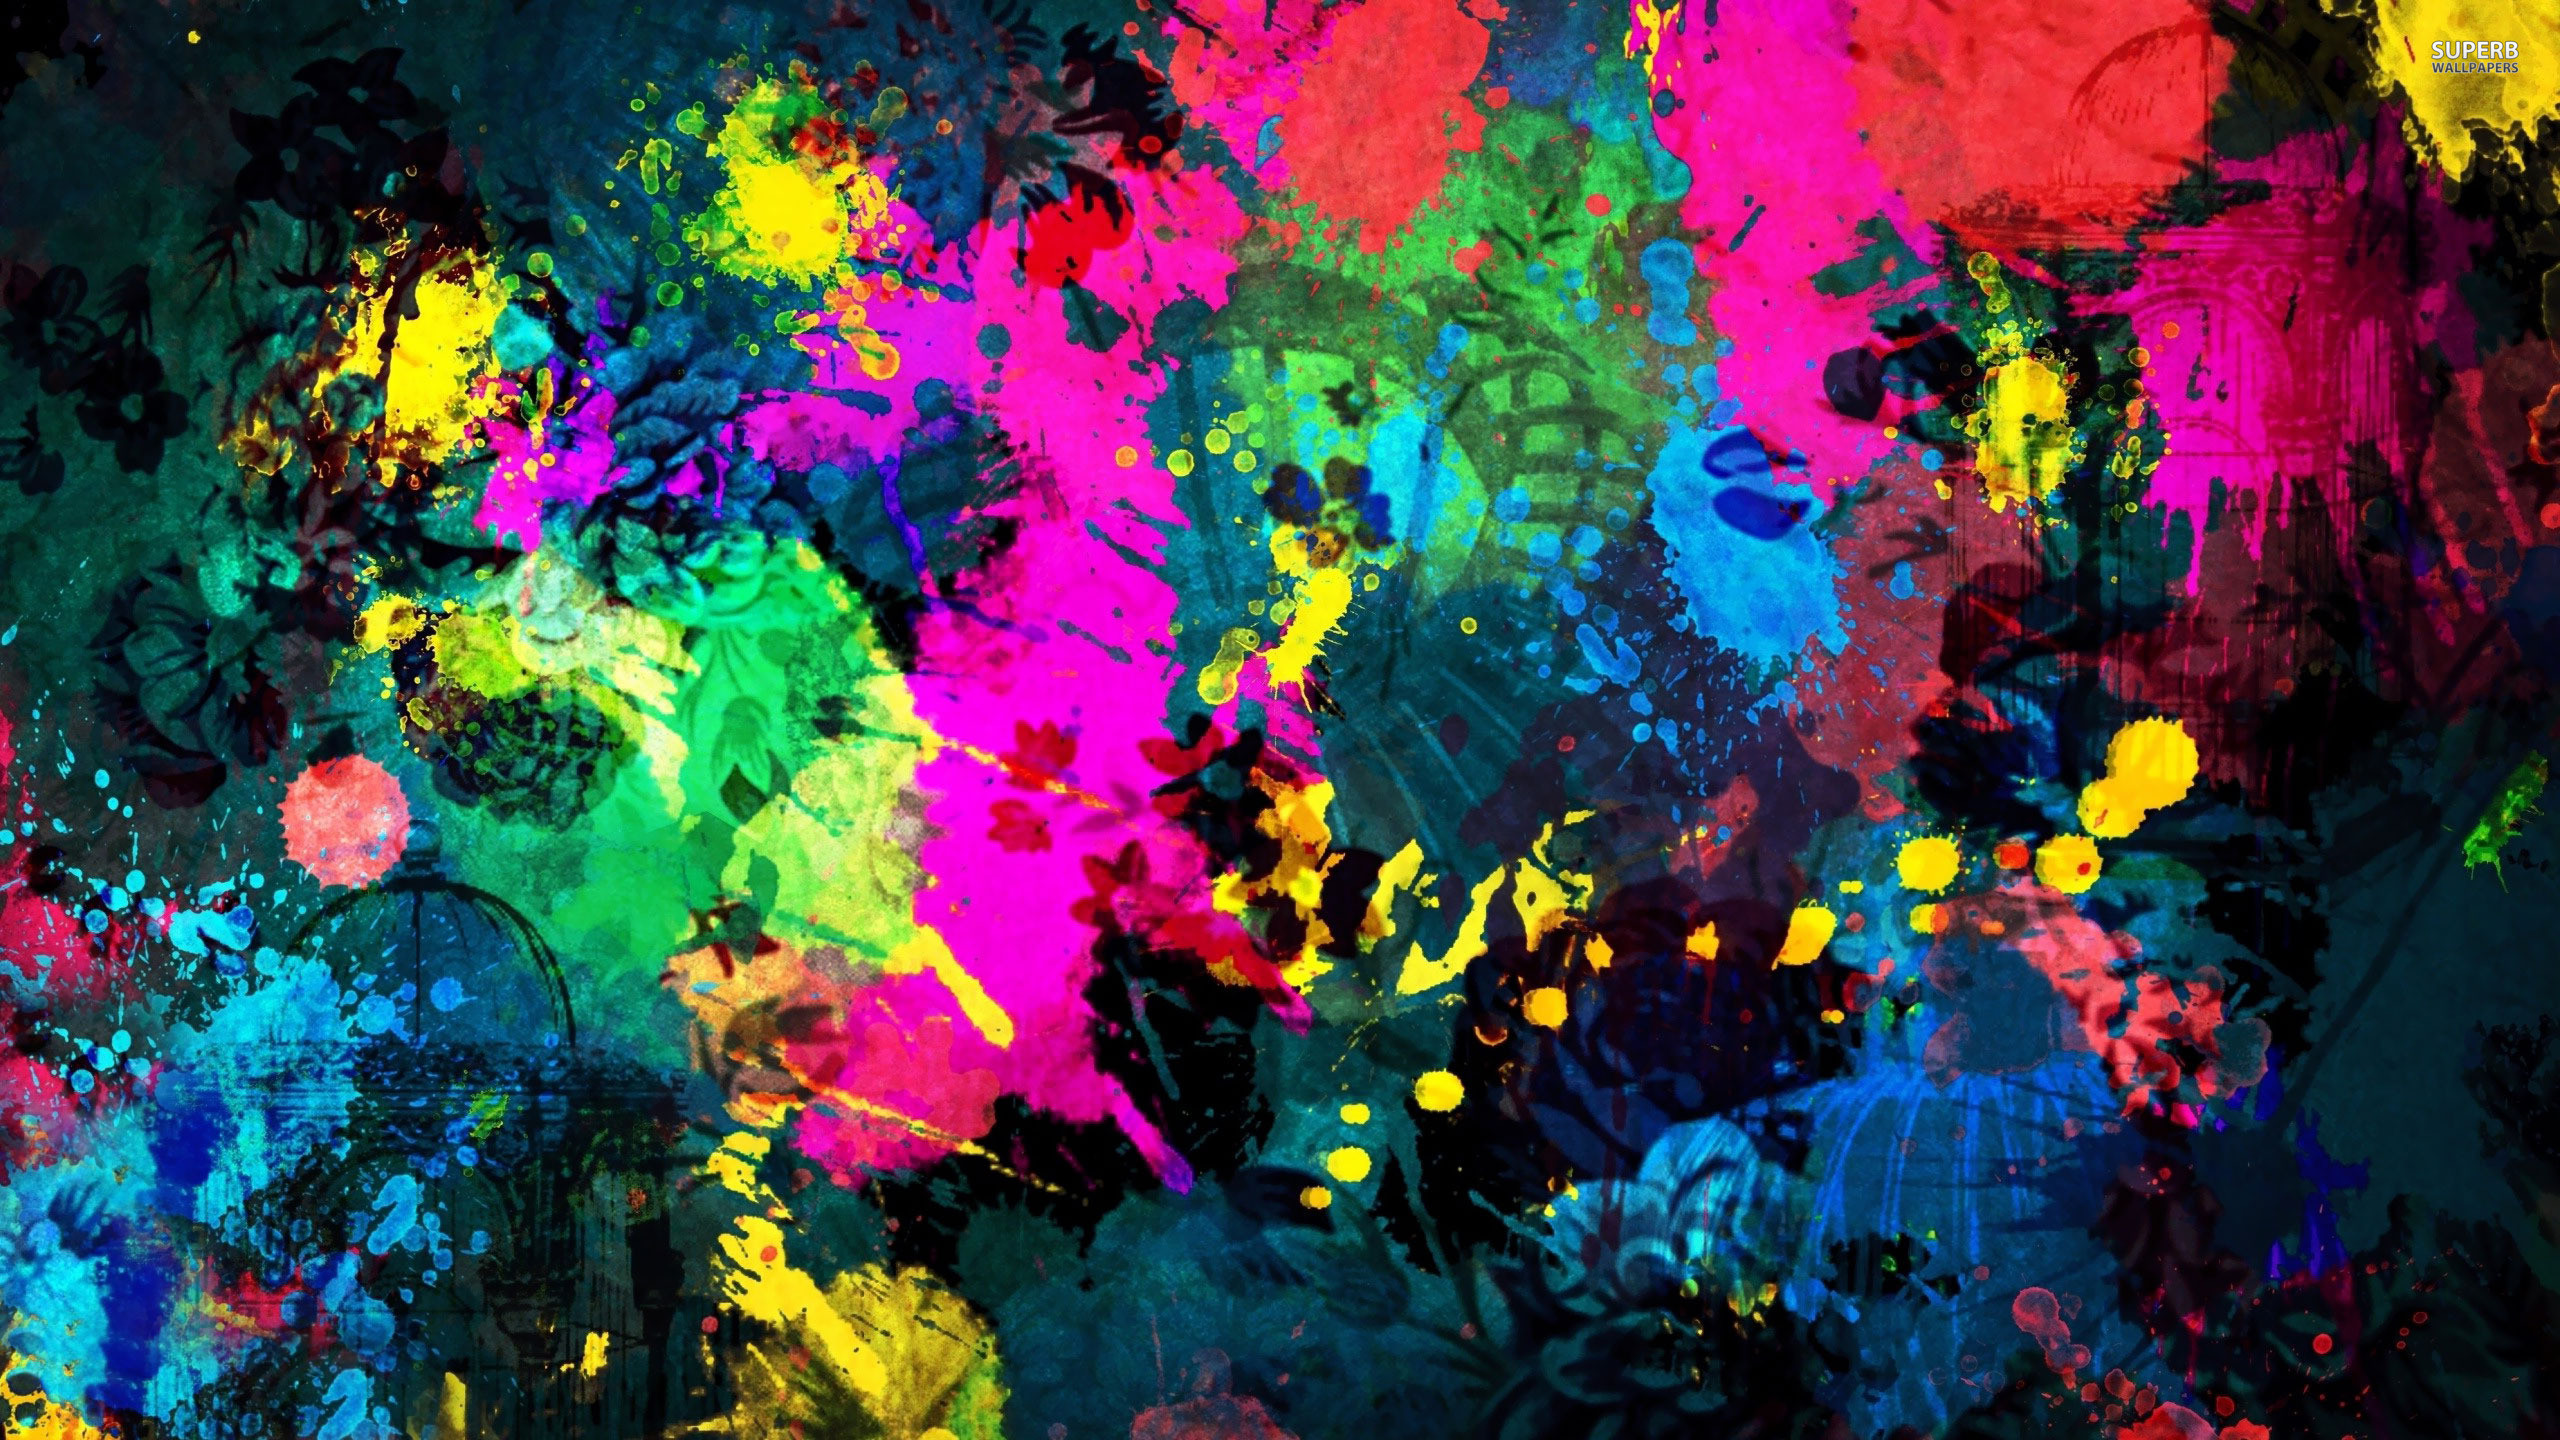 2560x1440 Colorful paint splatter wallpaper  jpg